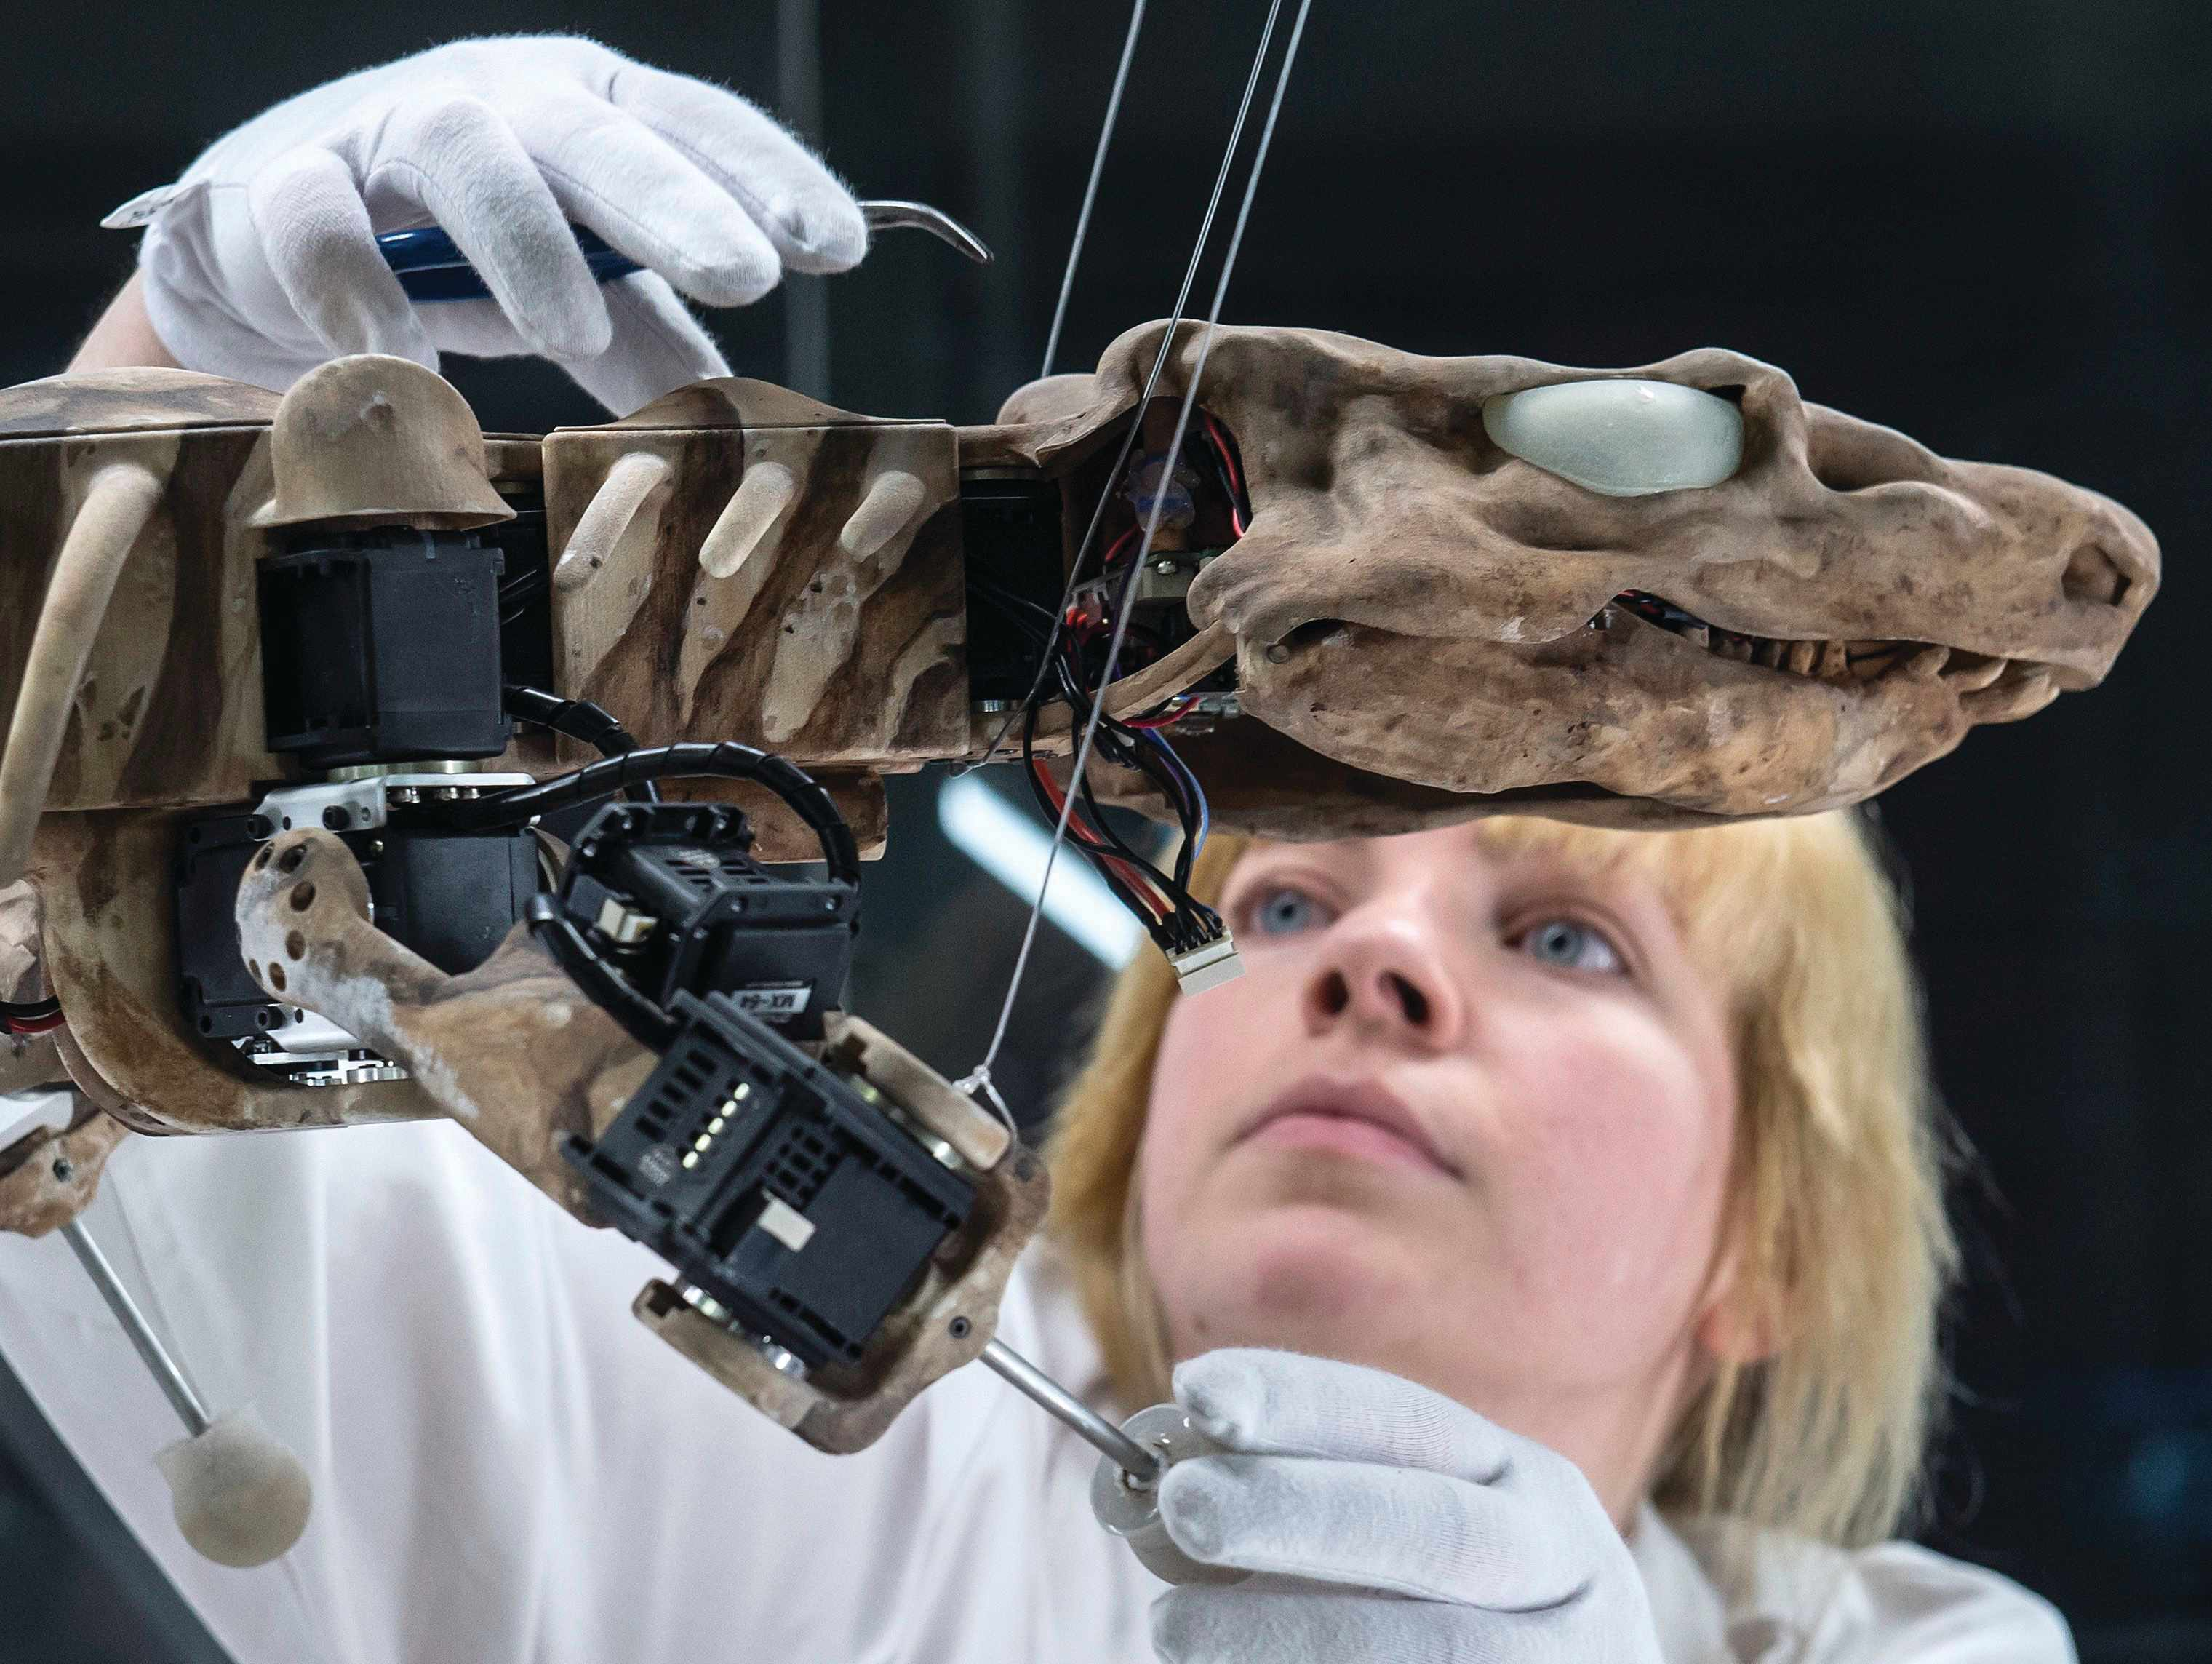 Stefanie Griebsch prepares a modified OroBOT for a demonstration of its walking ability © Shutterstock